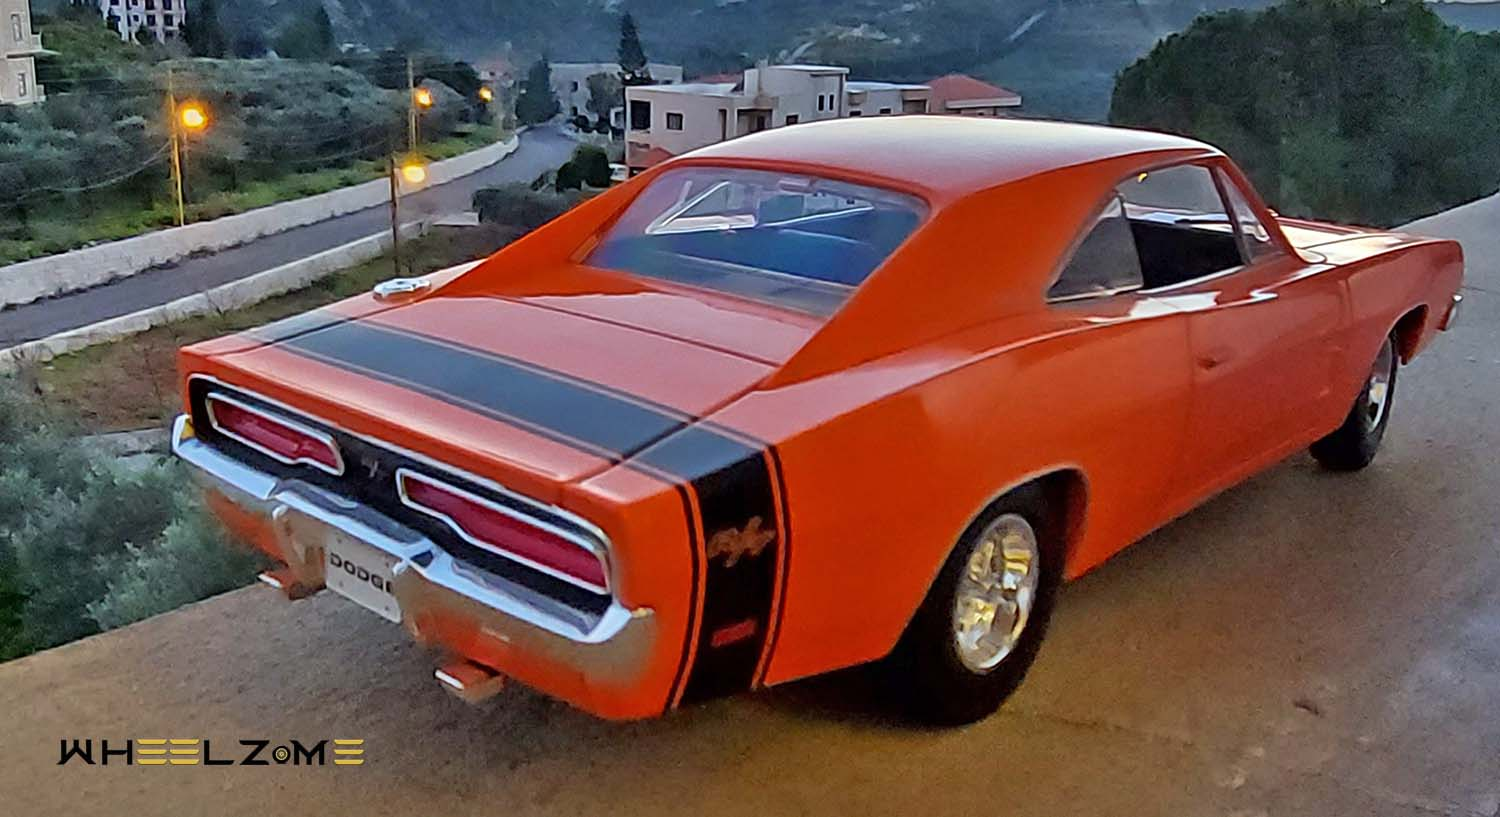 History Of Dodge Charger: Legacy, Legendary Power, Styling And Performance